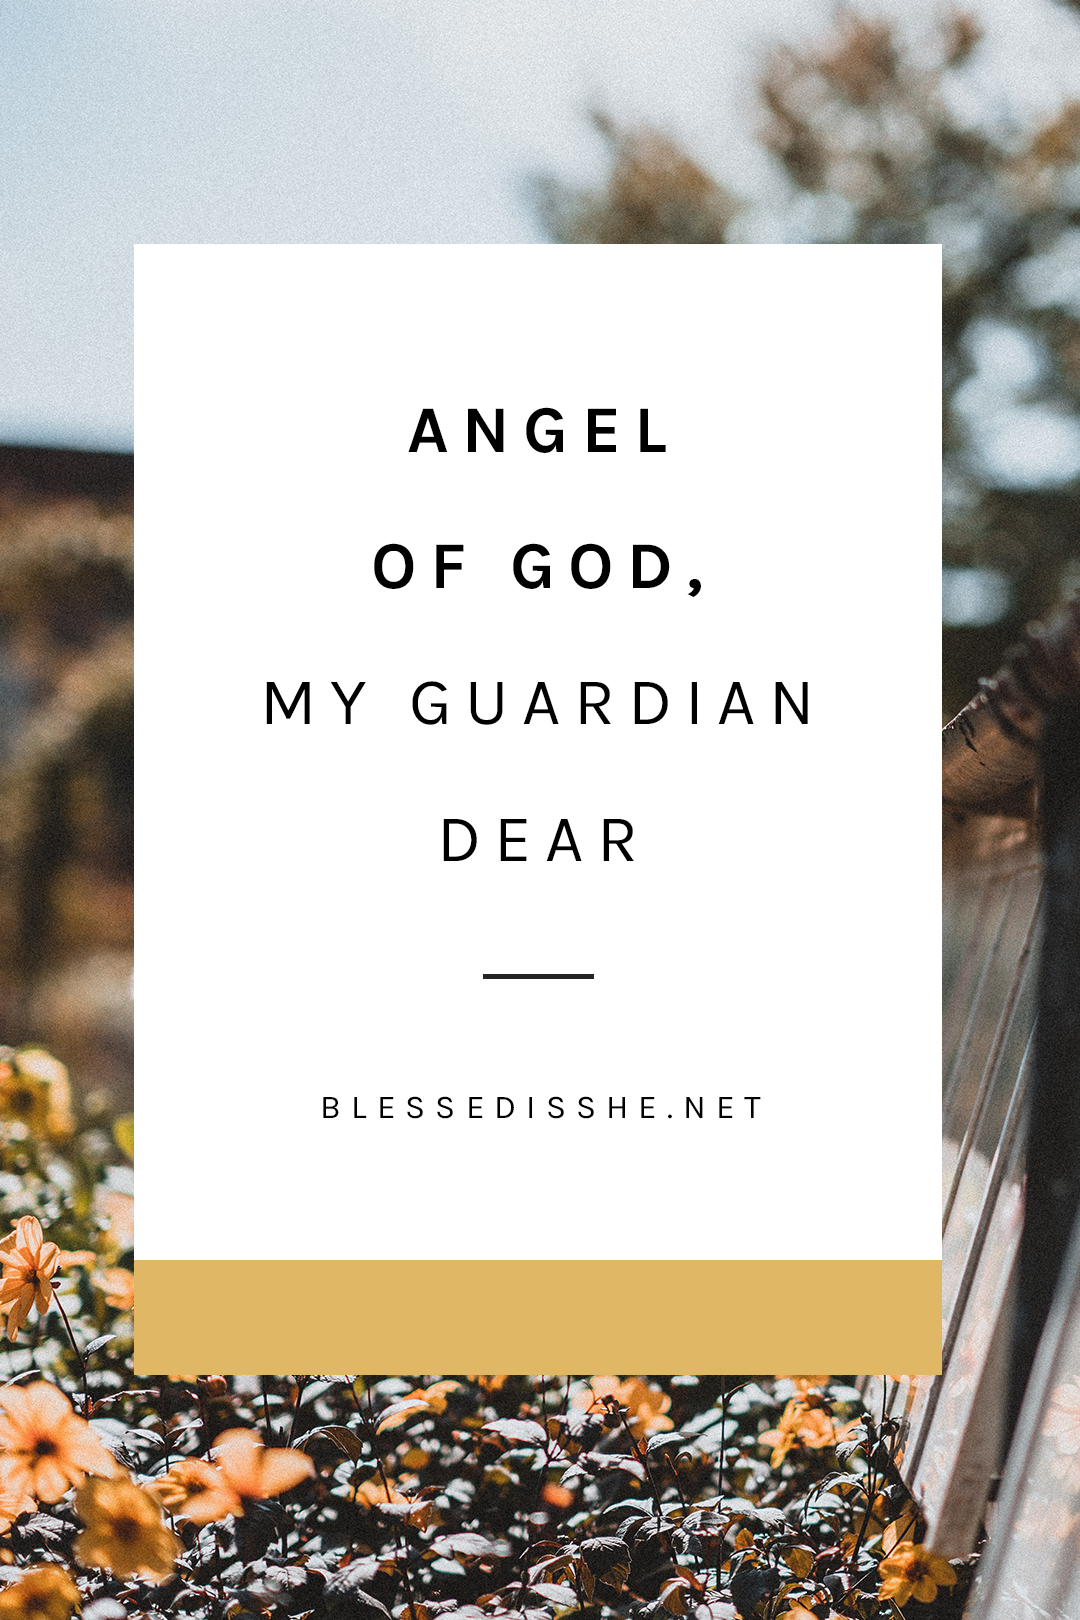 angel of god, my guardian dear